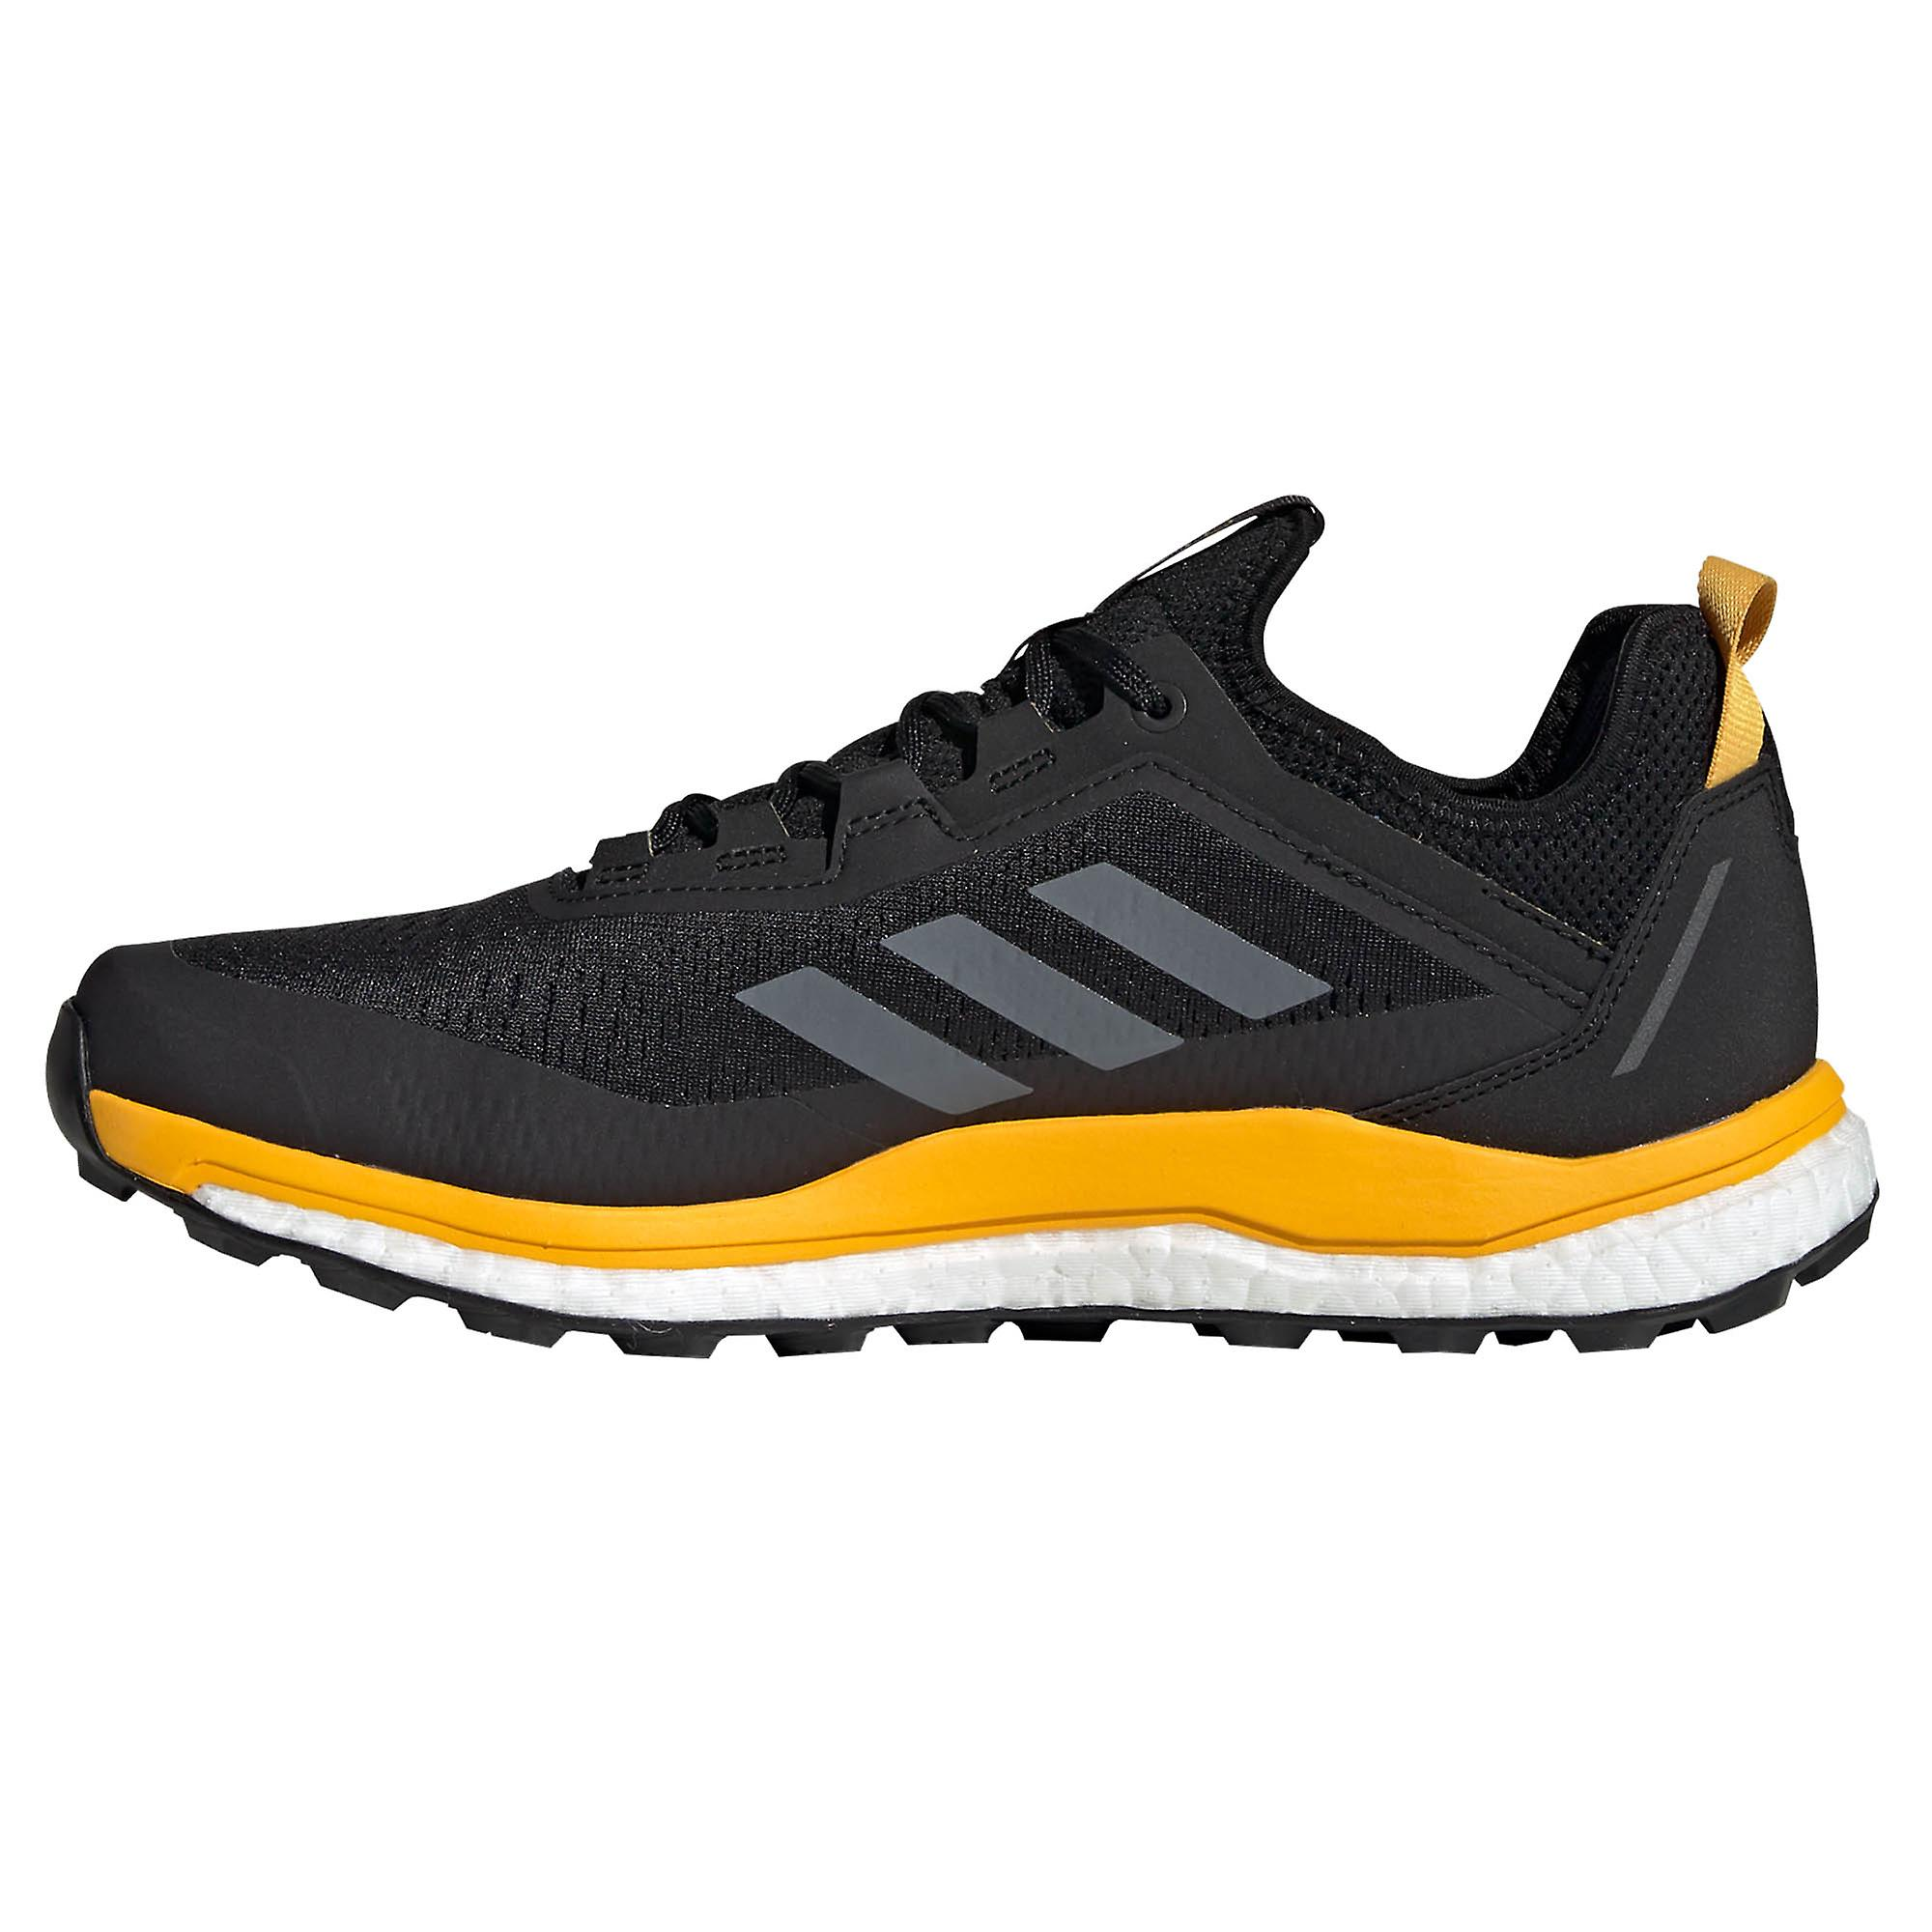 Adidas Terrex Agravic Flow Mens Trail Running Trainer Chaussure Noir/or